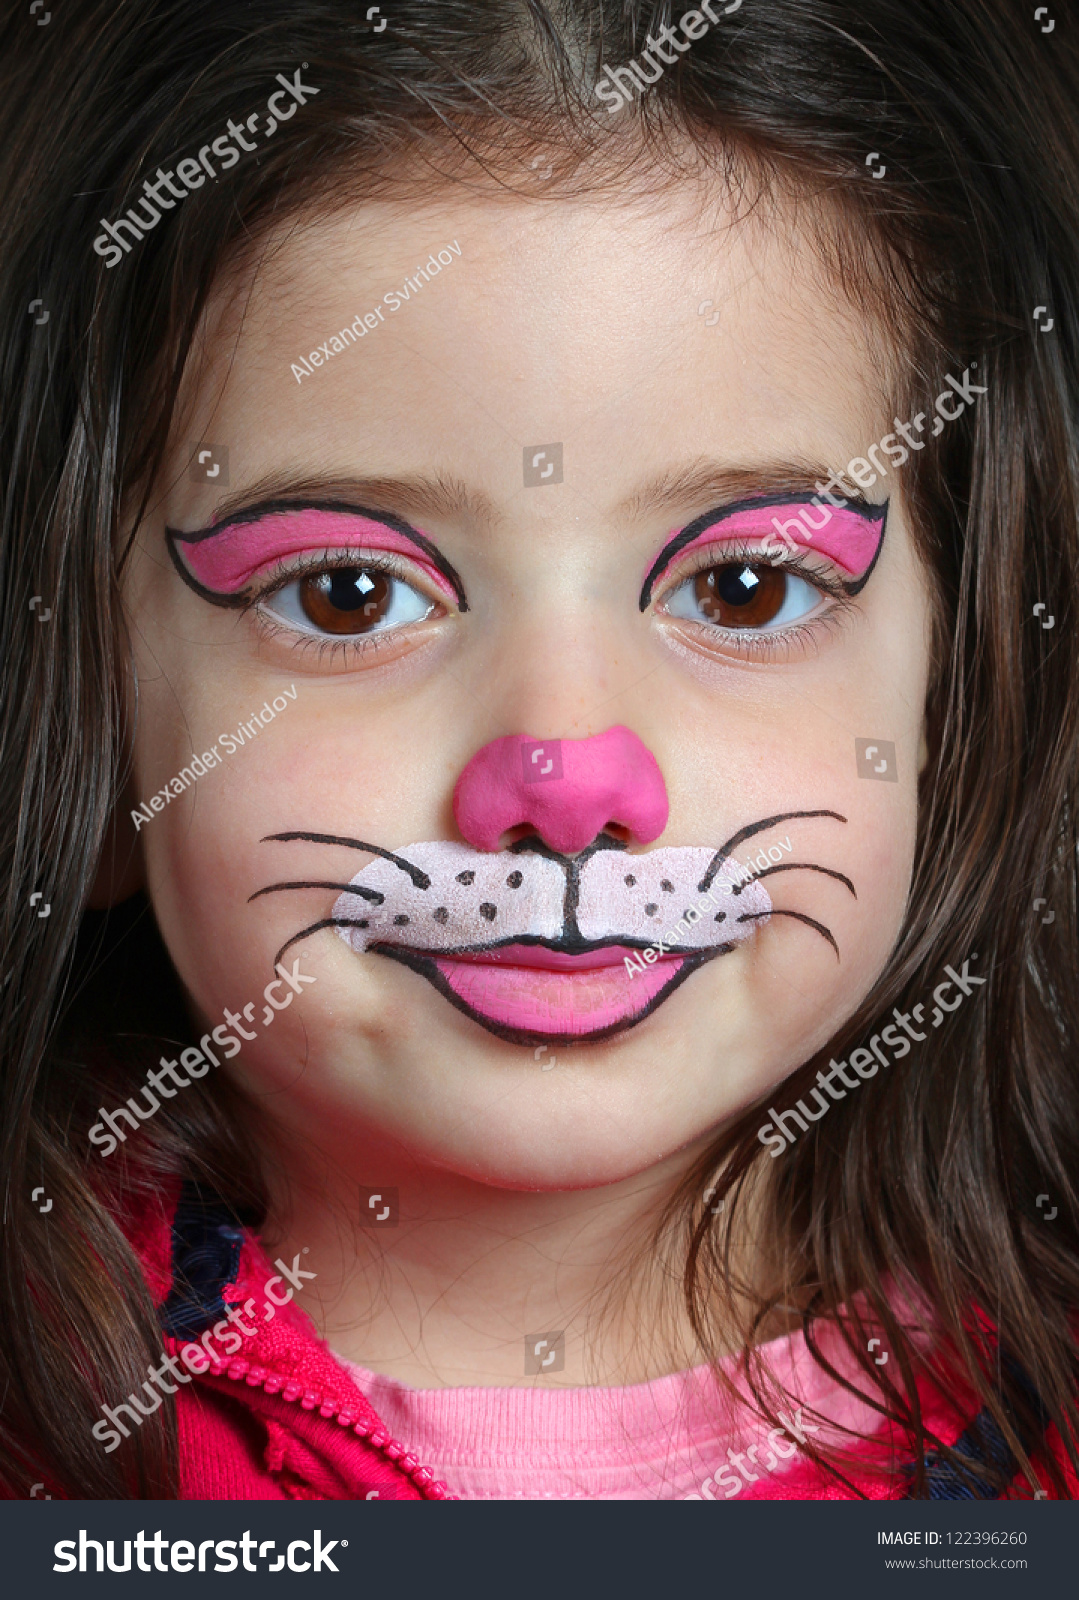 Uncategorized Face Paint Cat pretty girl face painting cat stock photo 122396260 shutterstock with of a cat